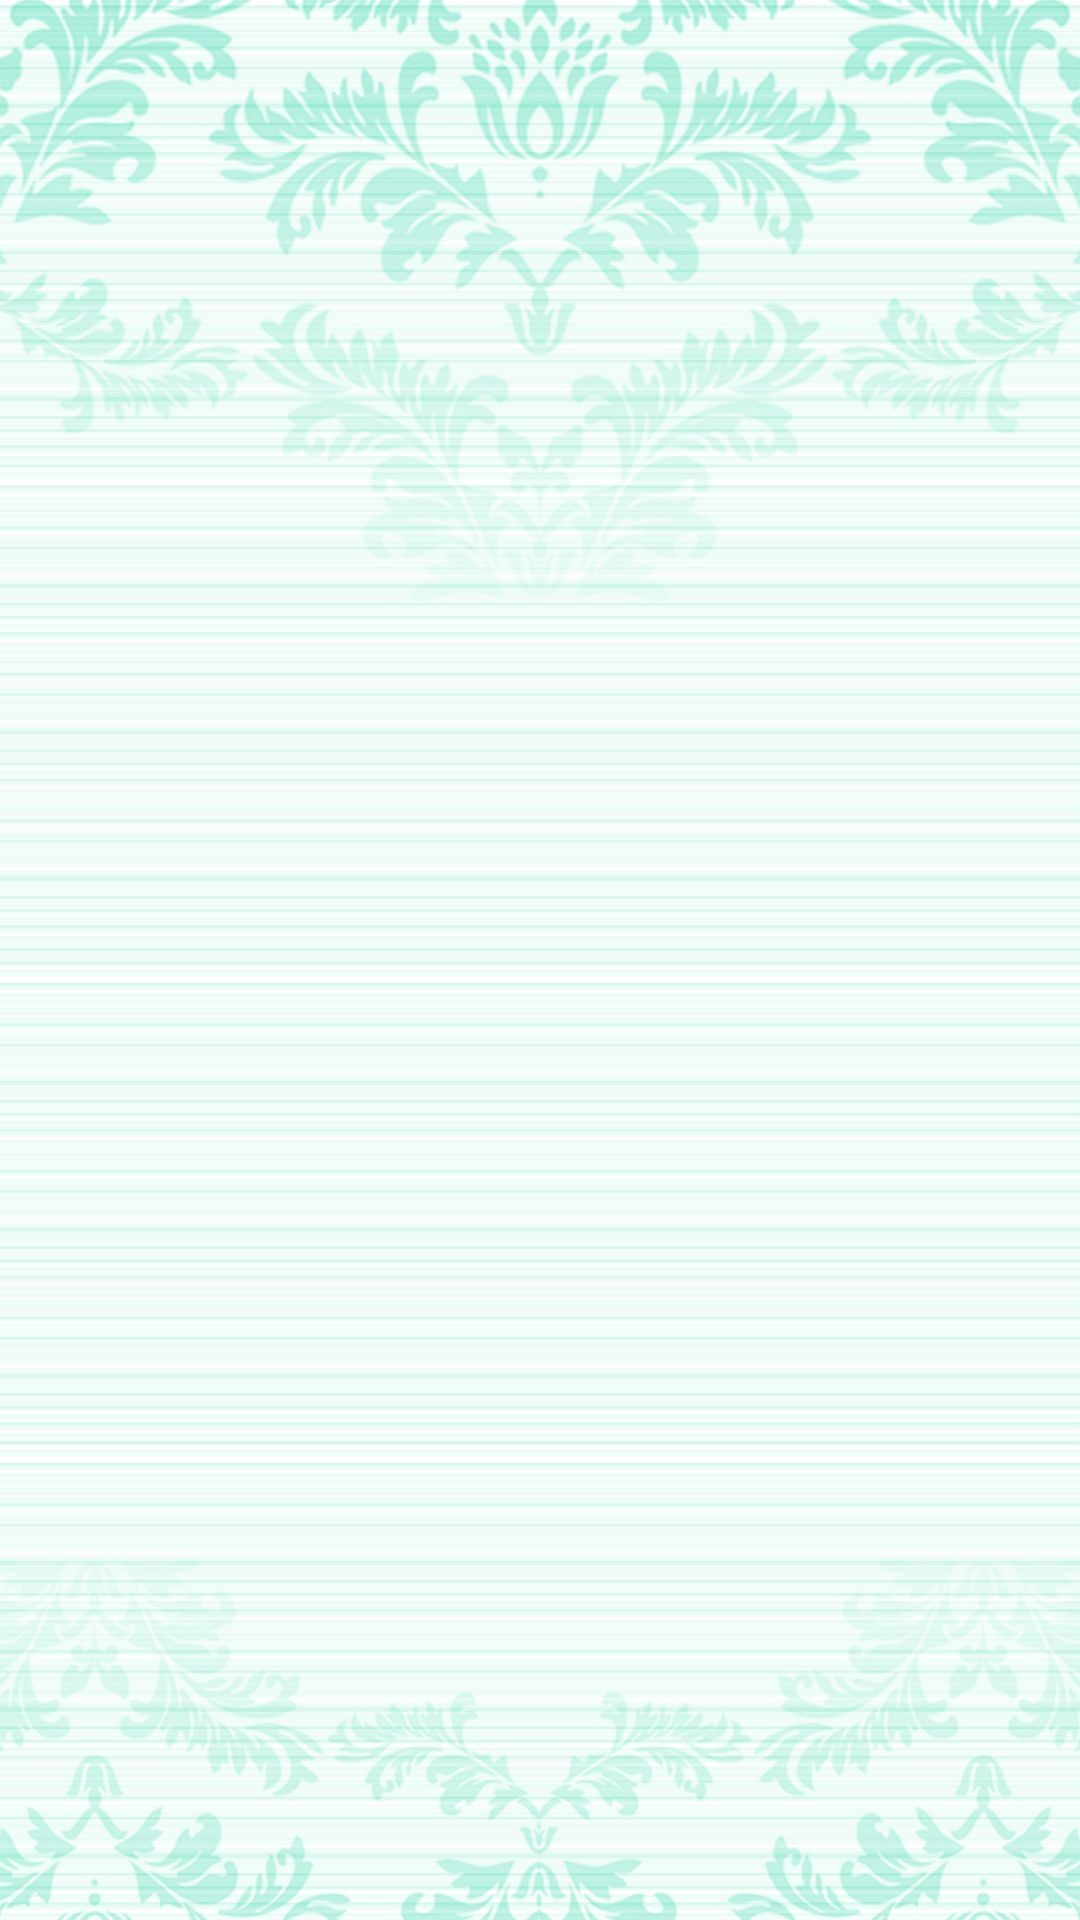 Res: 1080x1920, Pastel mint green ombre damask frame iPhone phone lock screen wallpaper  background